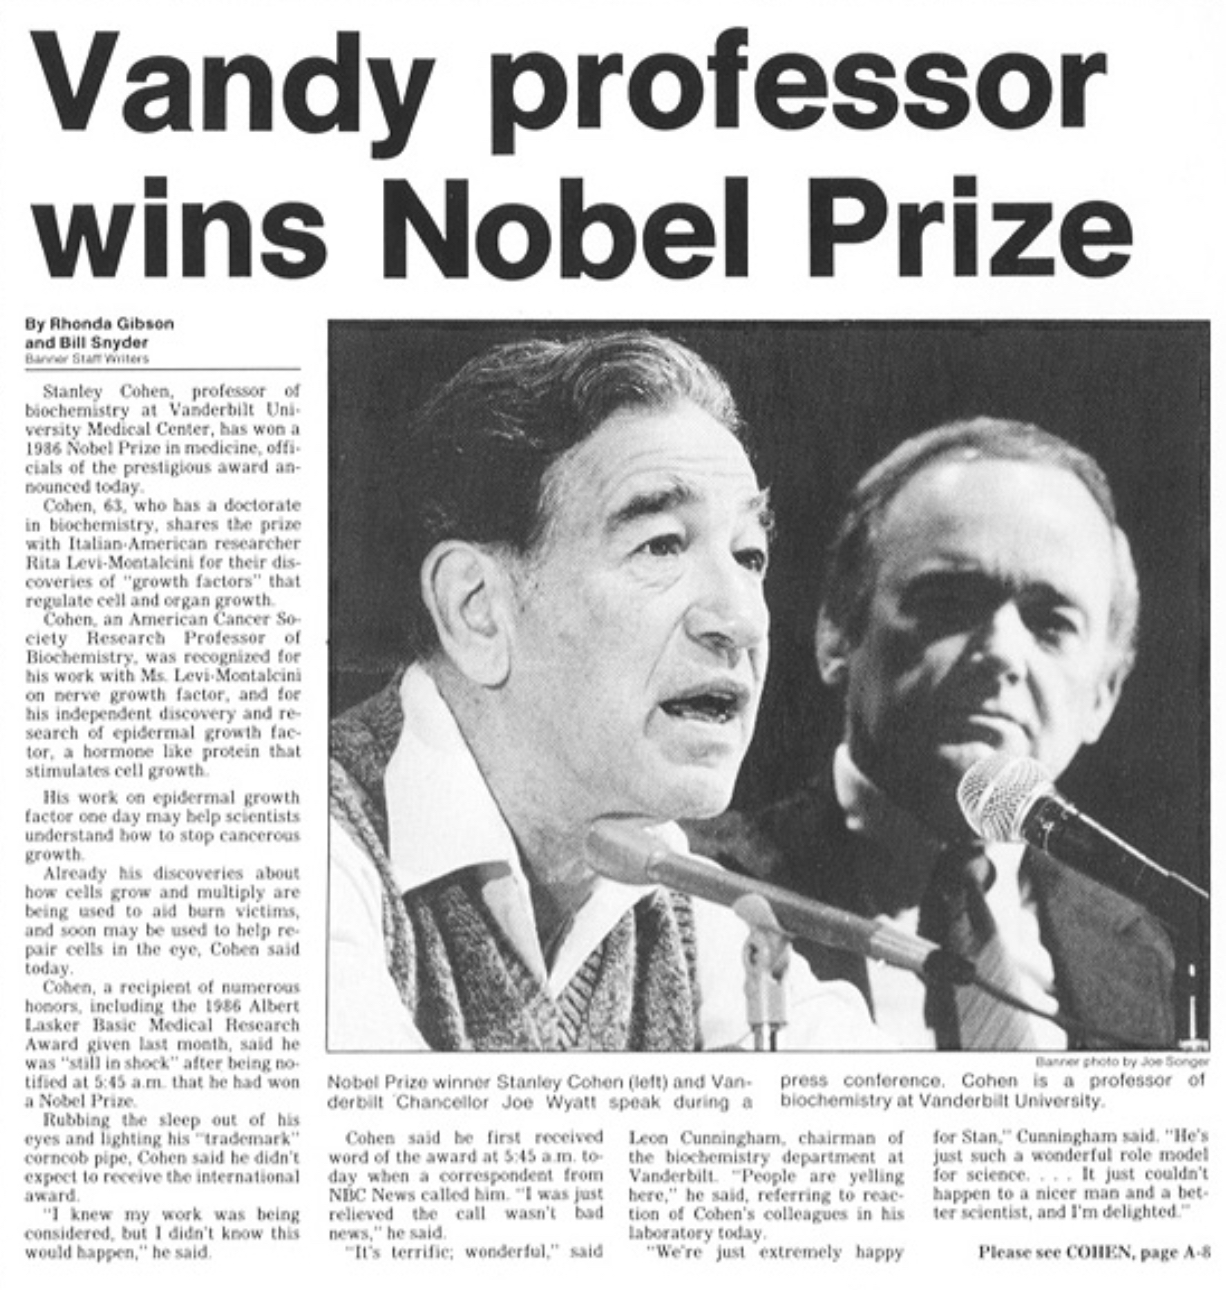 News article of Stanley Cohen winning Nobel Prize featuring a black-and-white photo of Dr. Cohen (left) and Vanderbilt Chancellor Joe Wyatt (right).